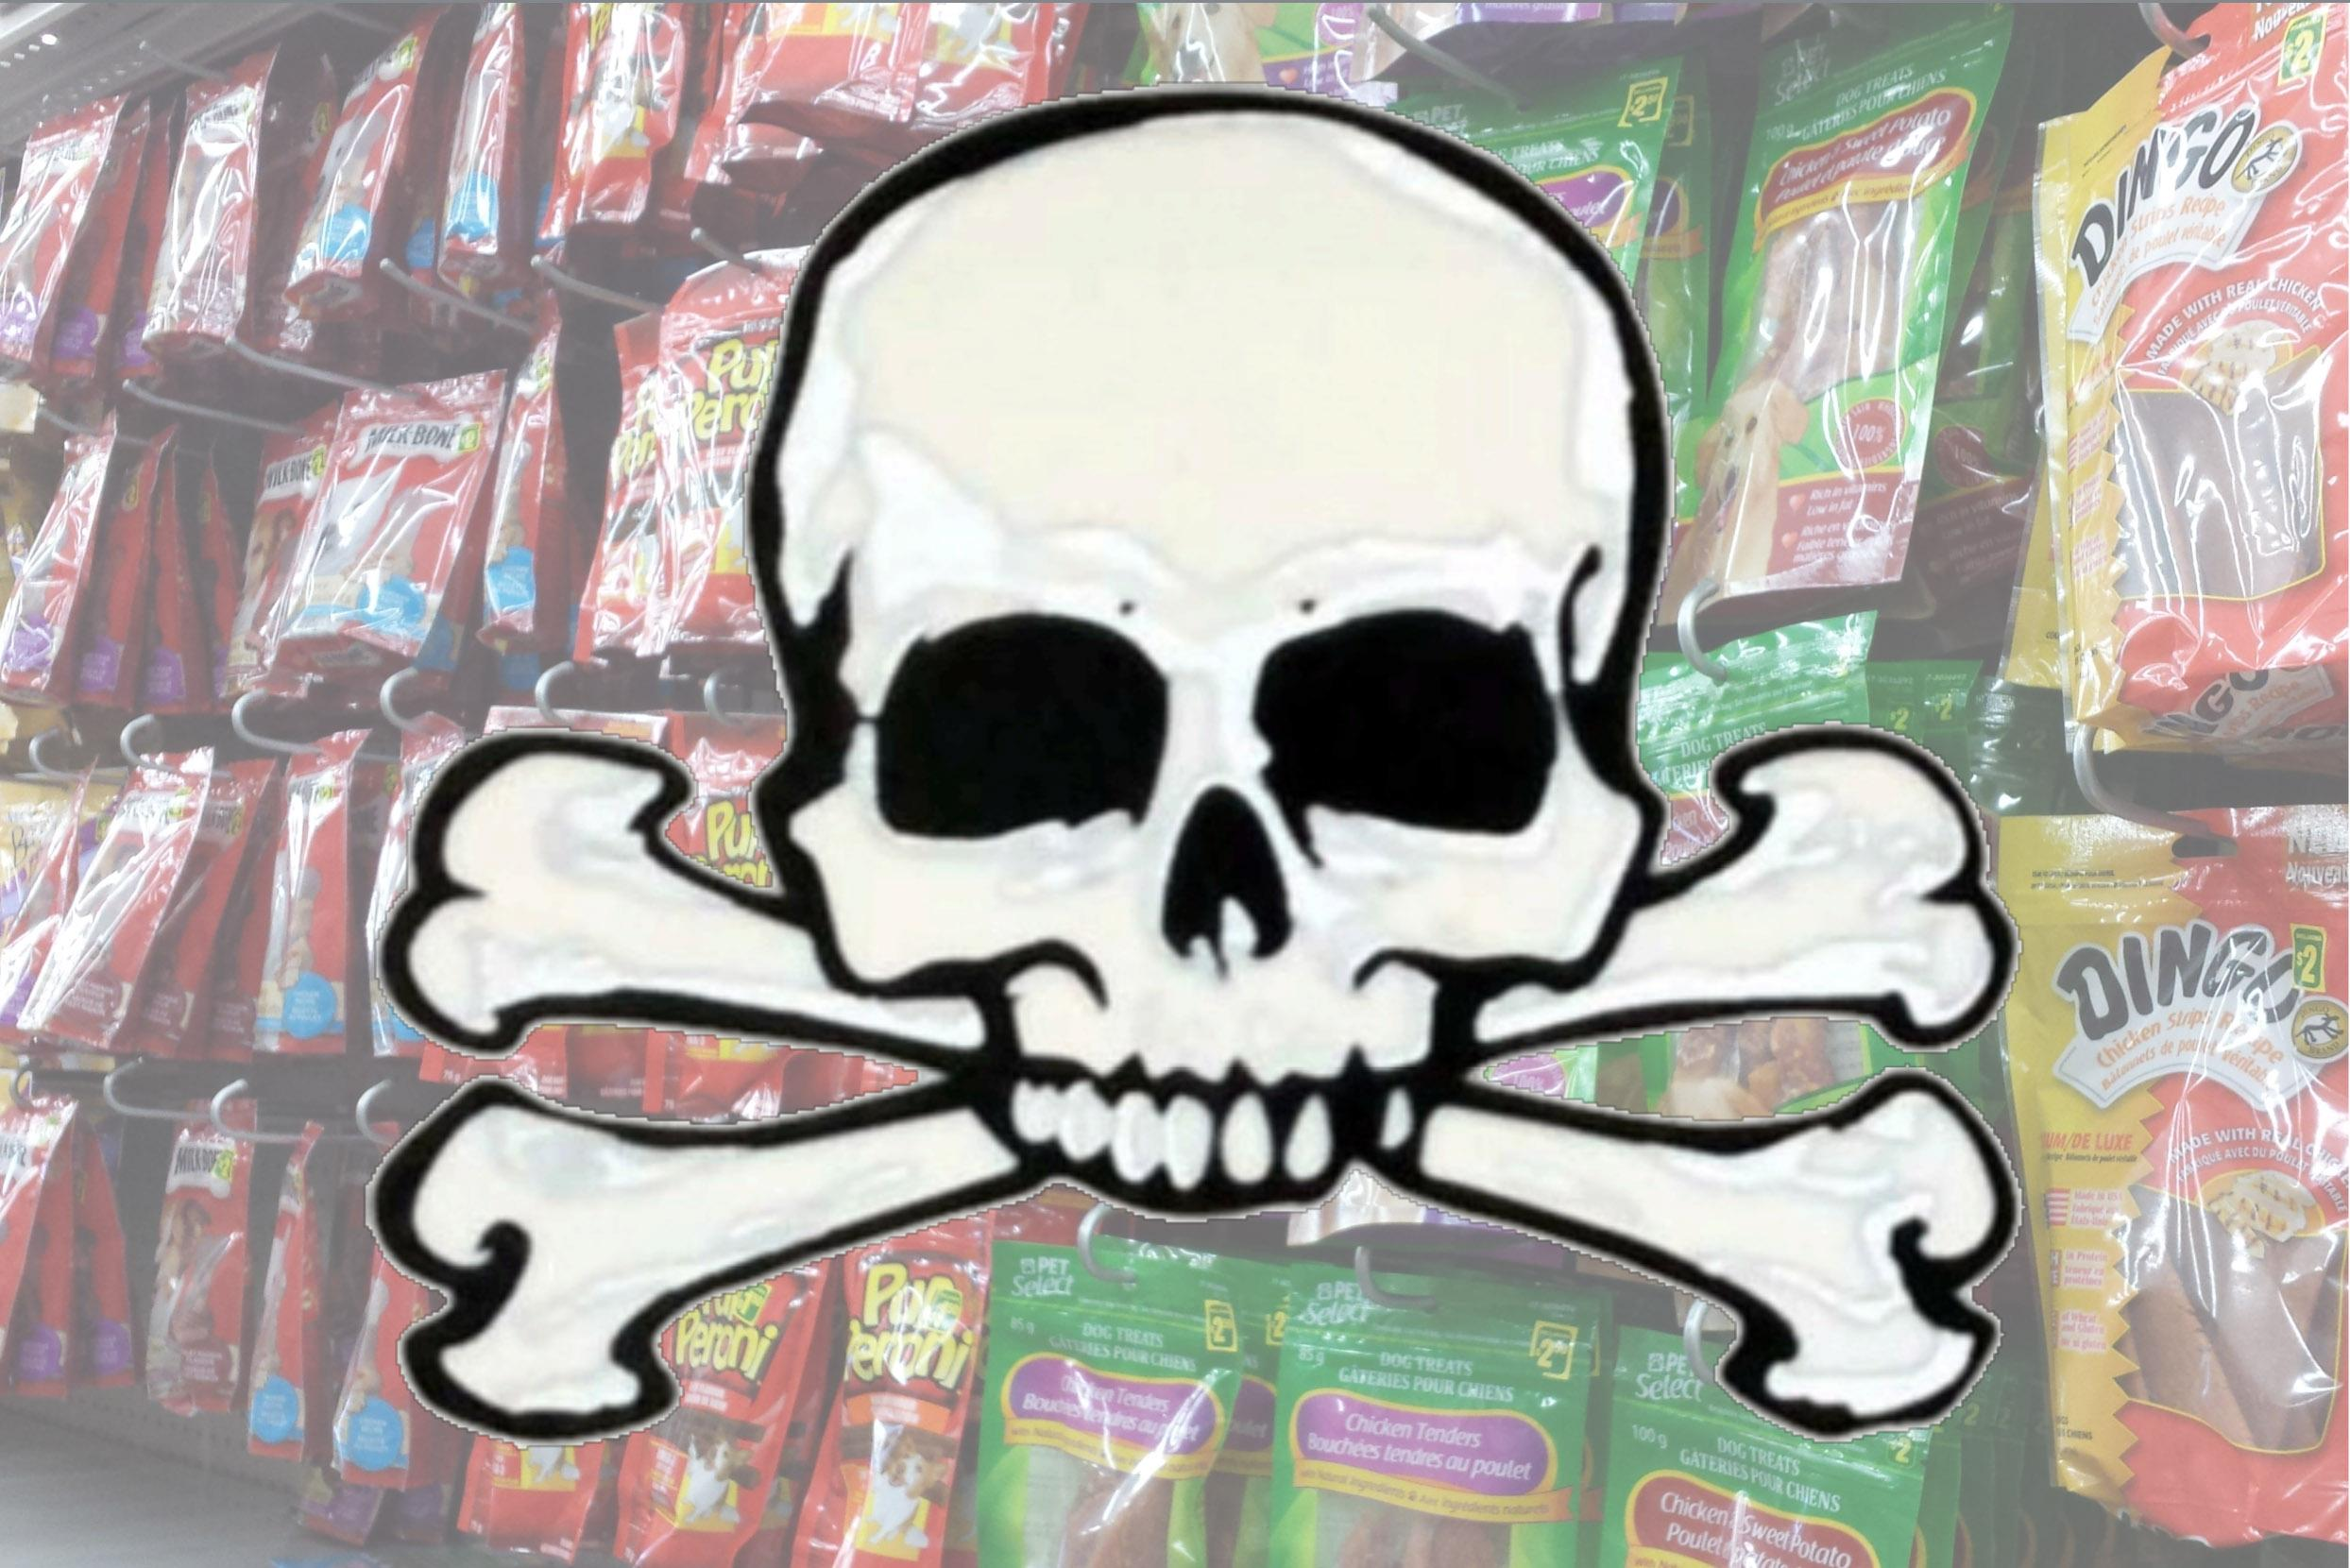 jerky treats have caused death